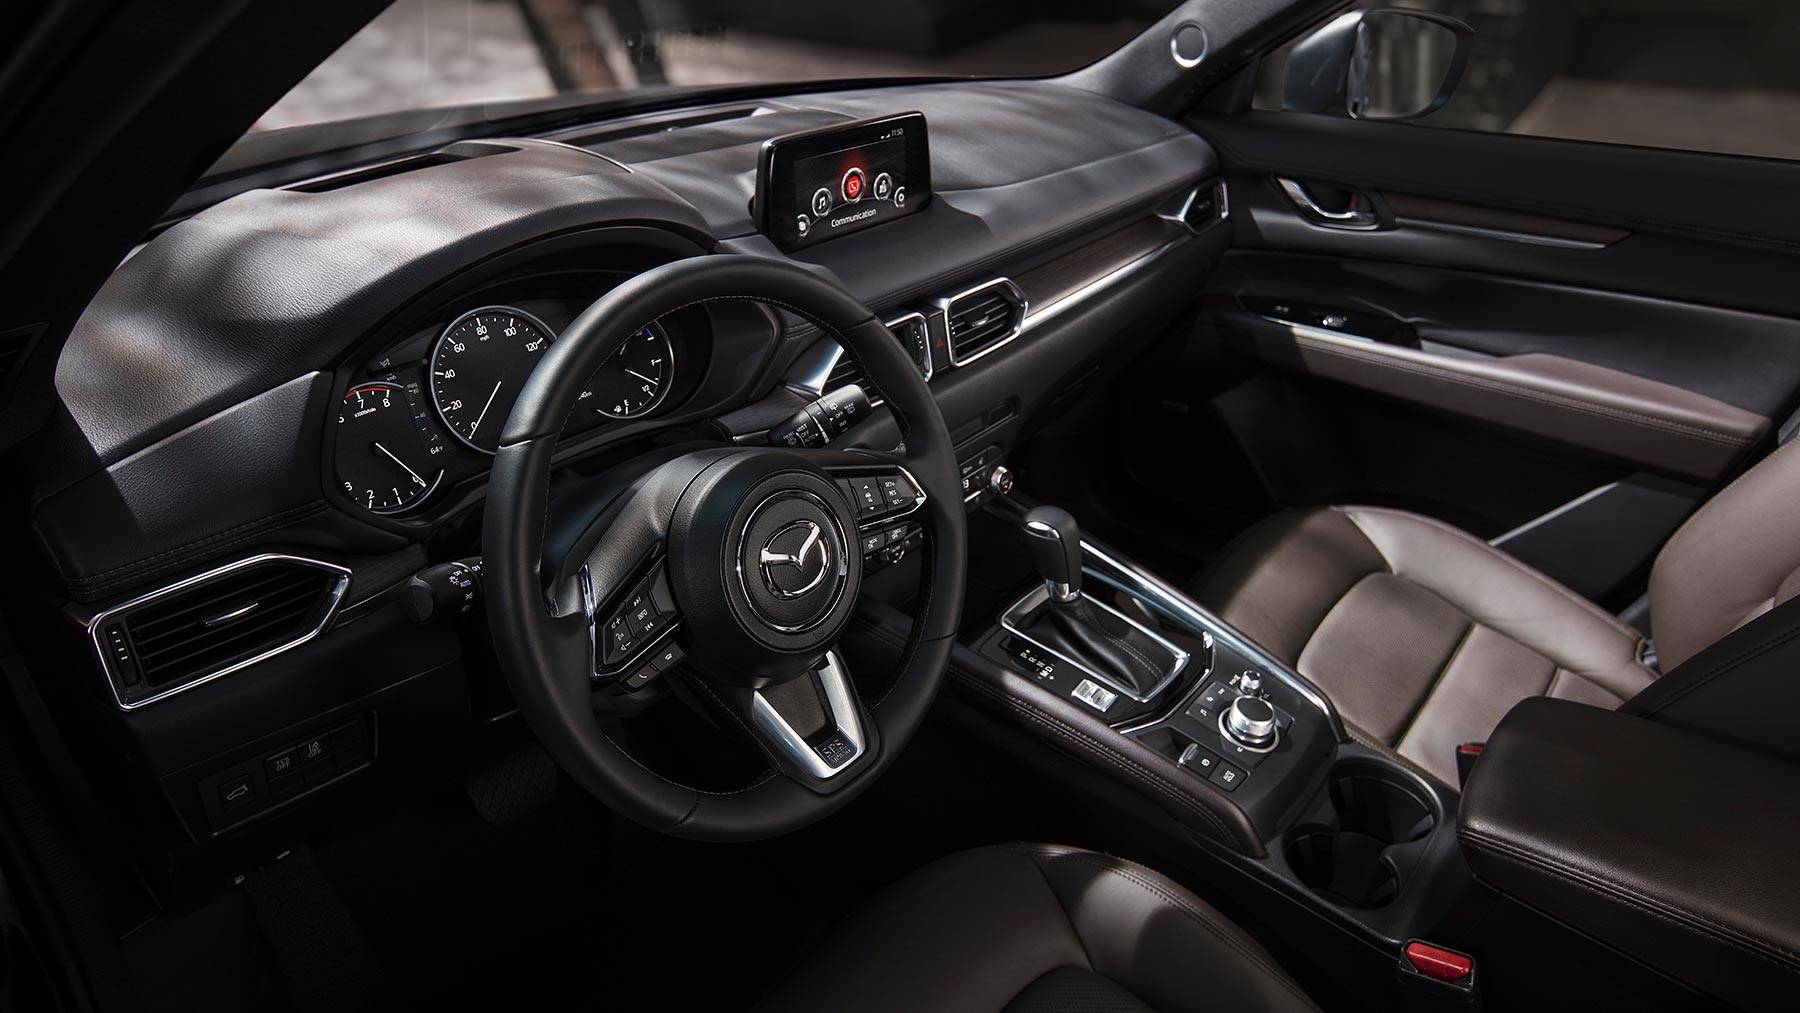 Interior of the 2019 Mazda CX-5